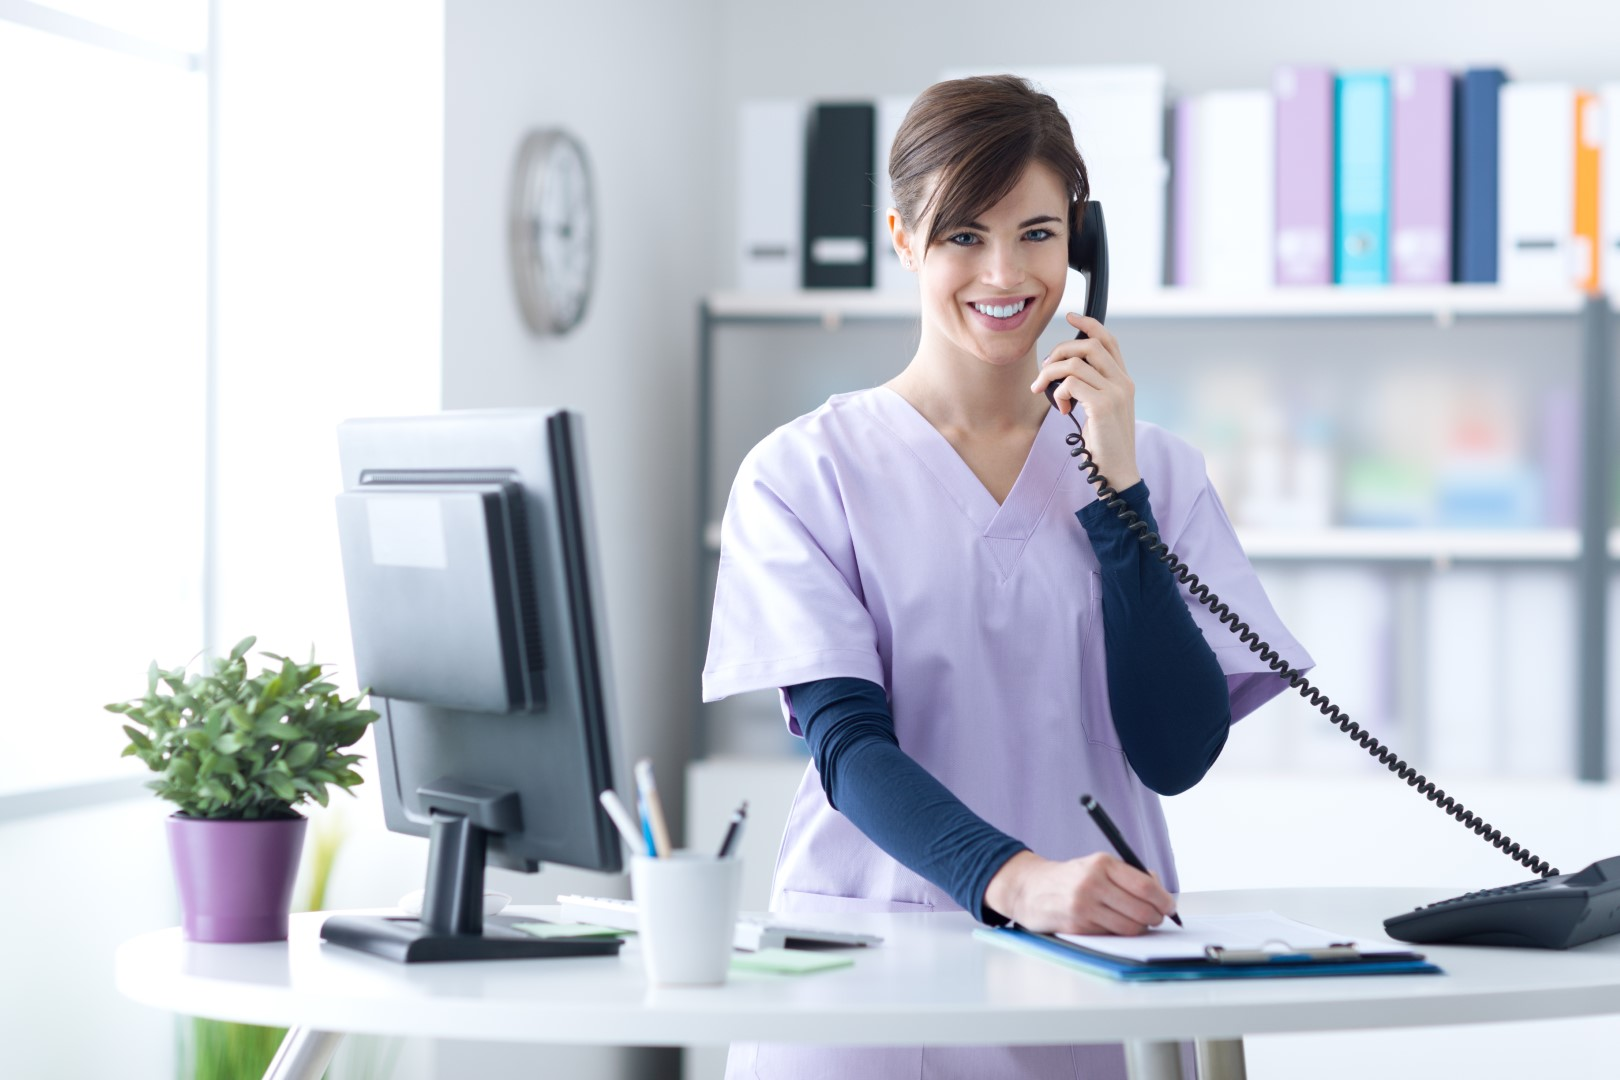 5 Tips for Your Medical Office Reception Staff